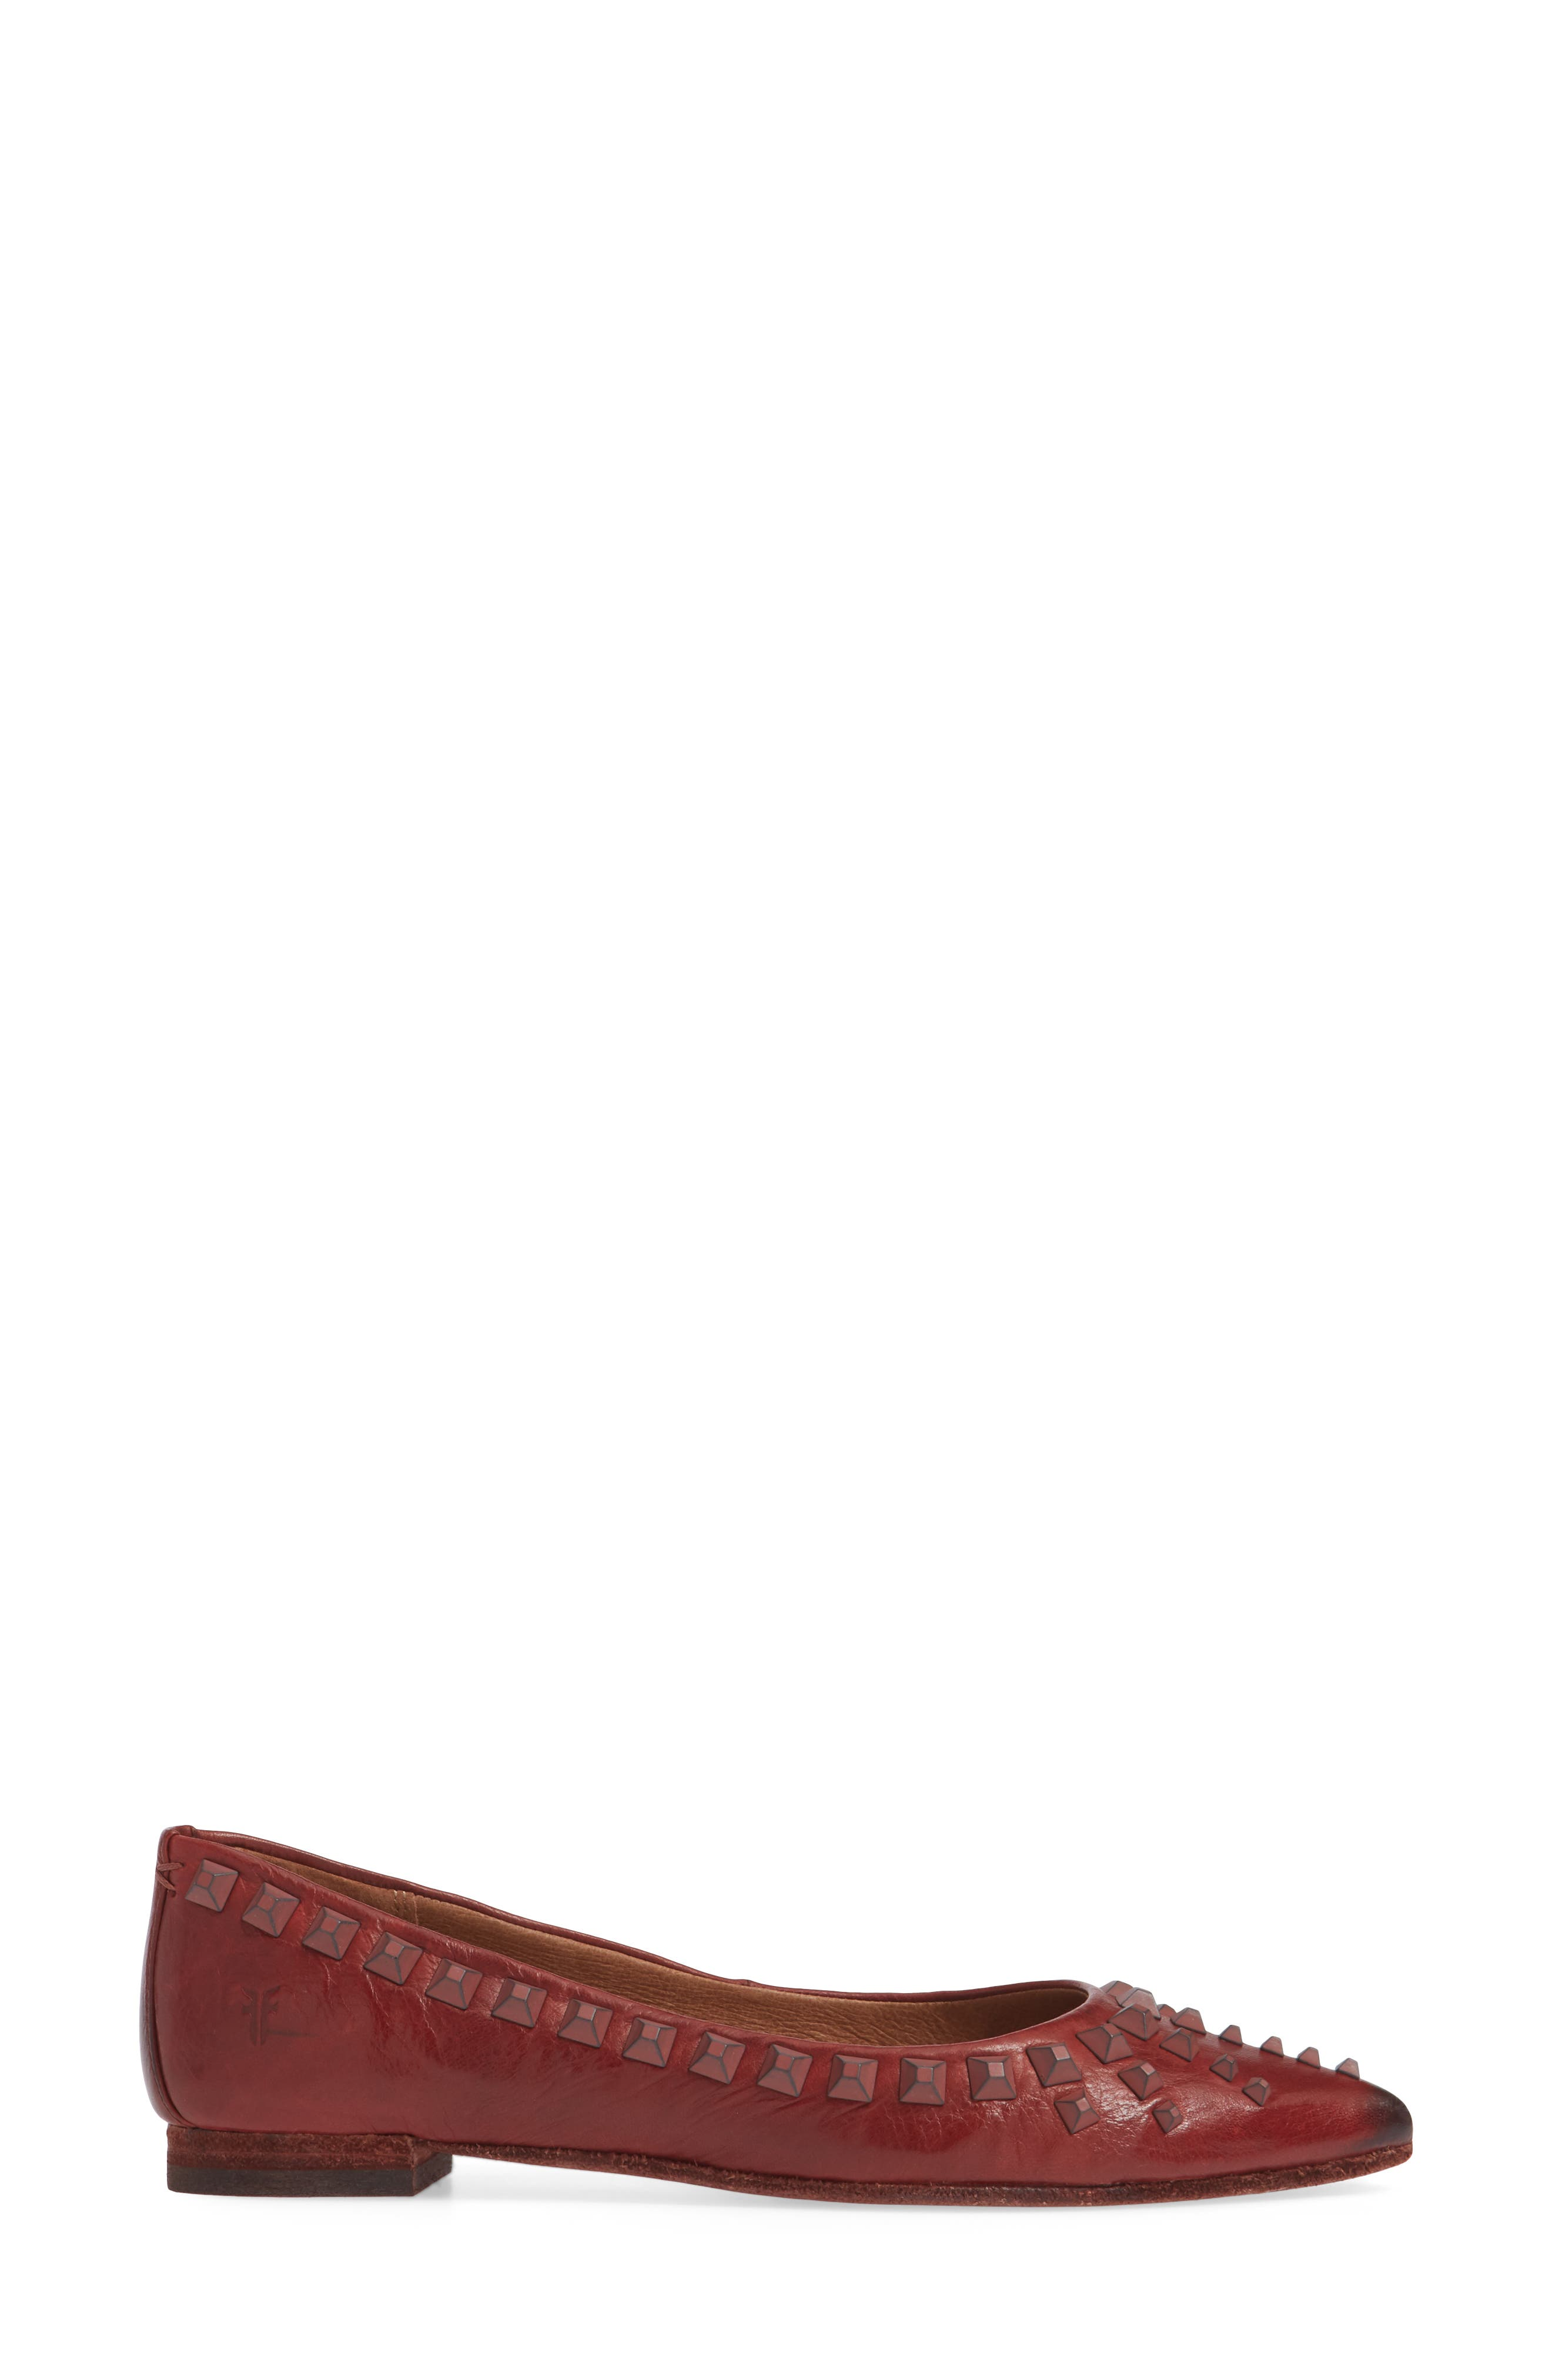 Sienna Deco Stud Ballet Flat,                             Alternate thumbnail 3, color,                             RED CLAY LEATHER